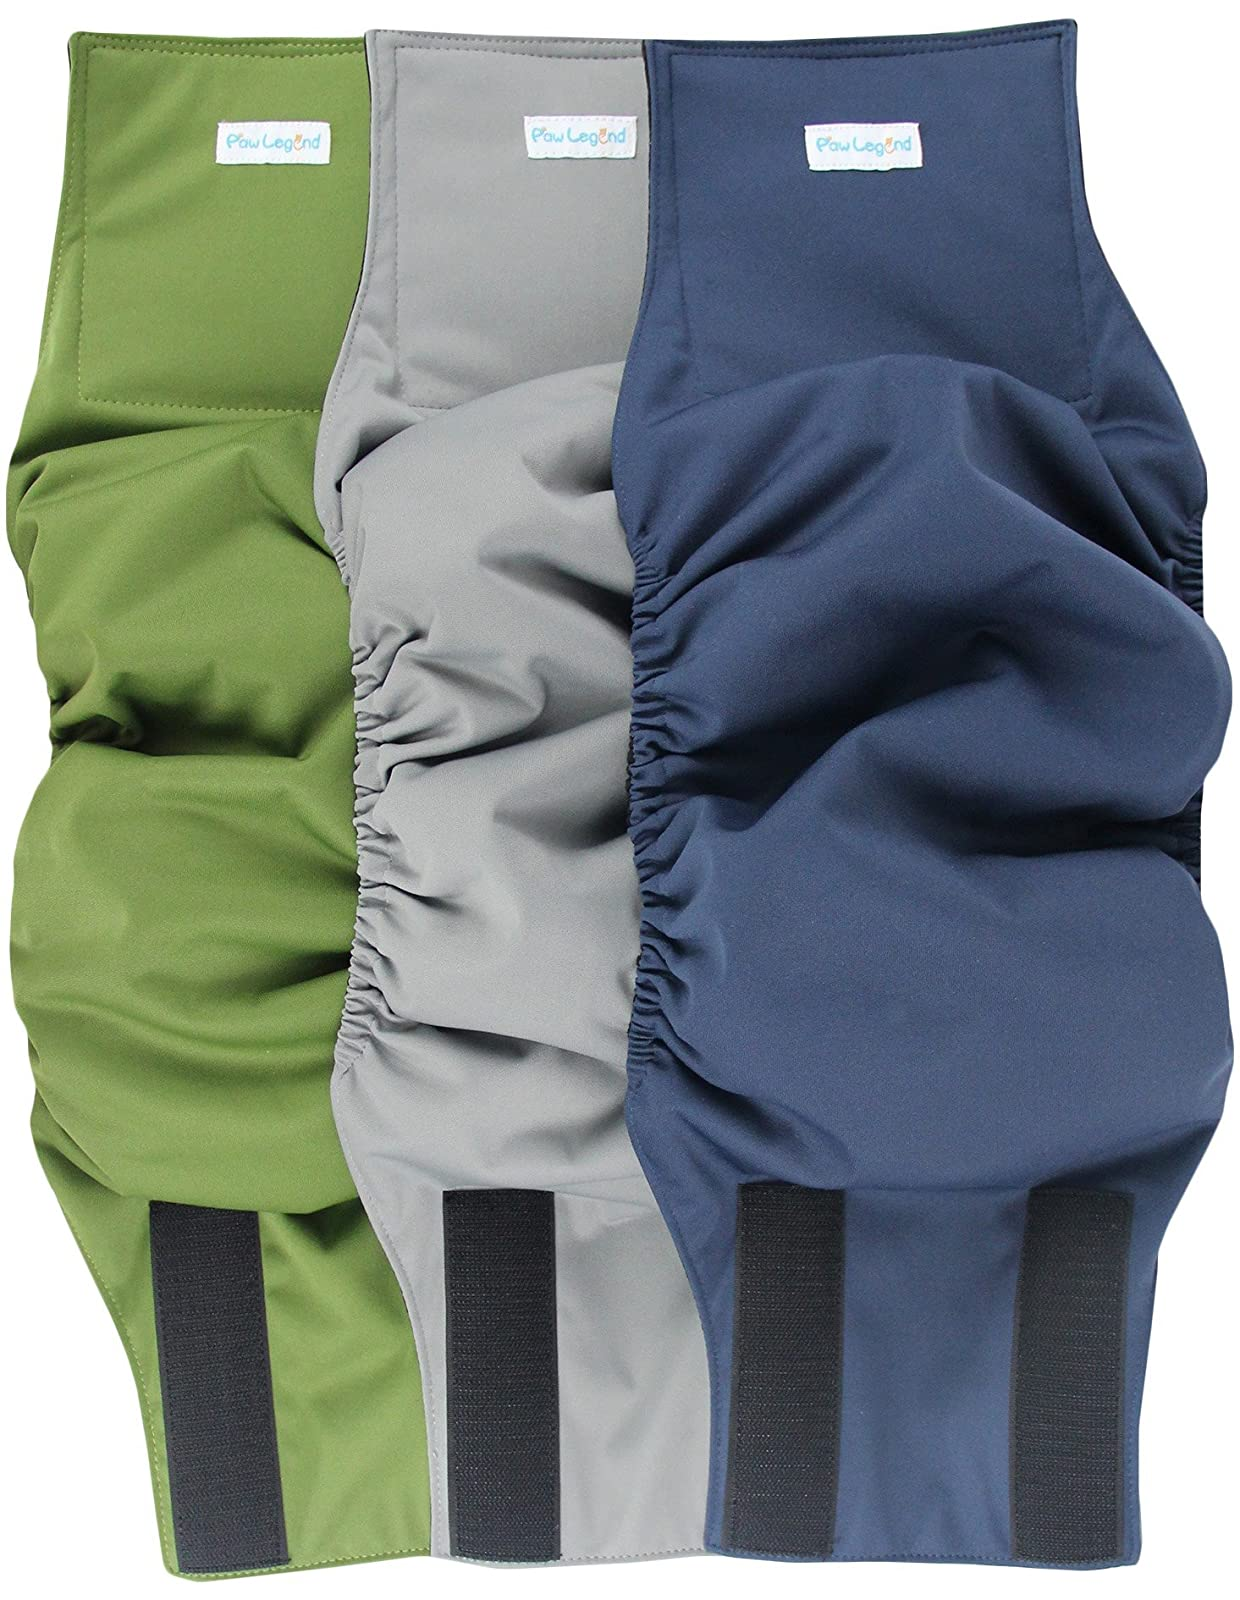 Paw Legend Washable Dog Belly Wrap DiapersMale - 9